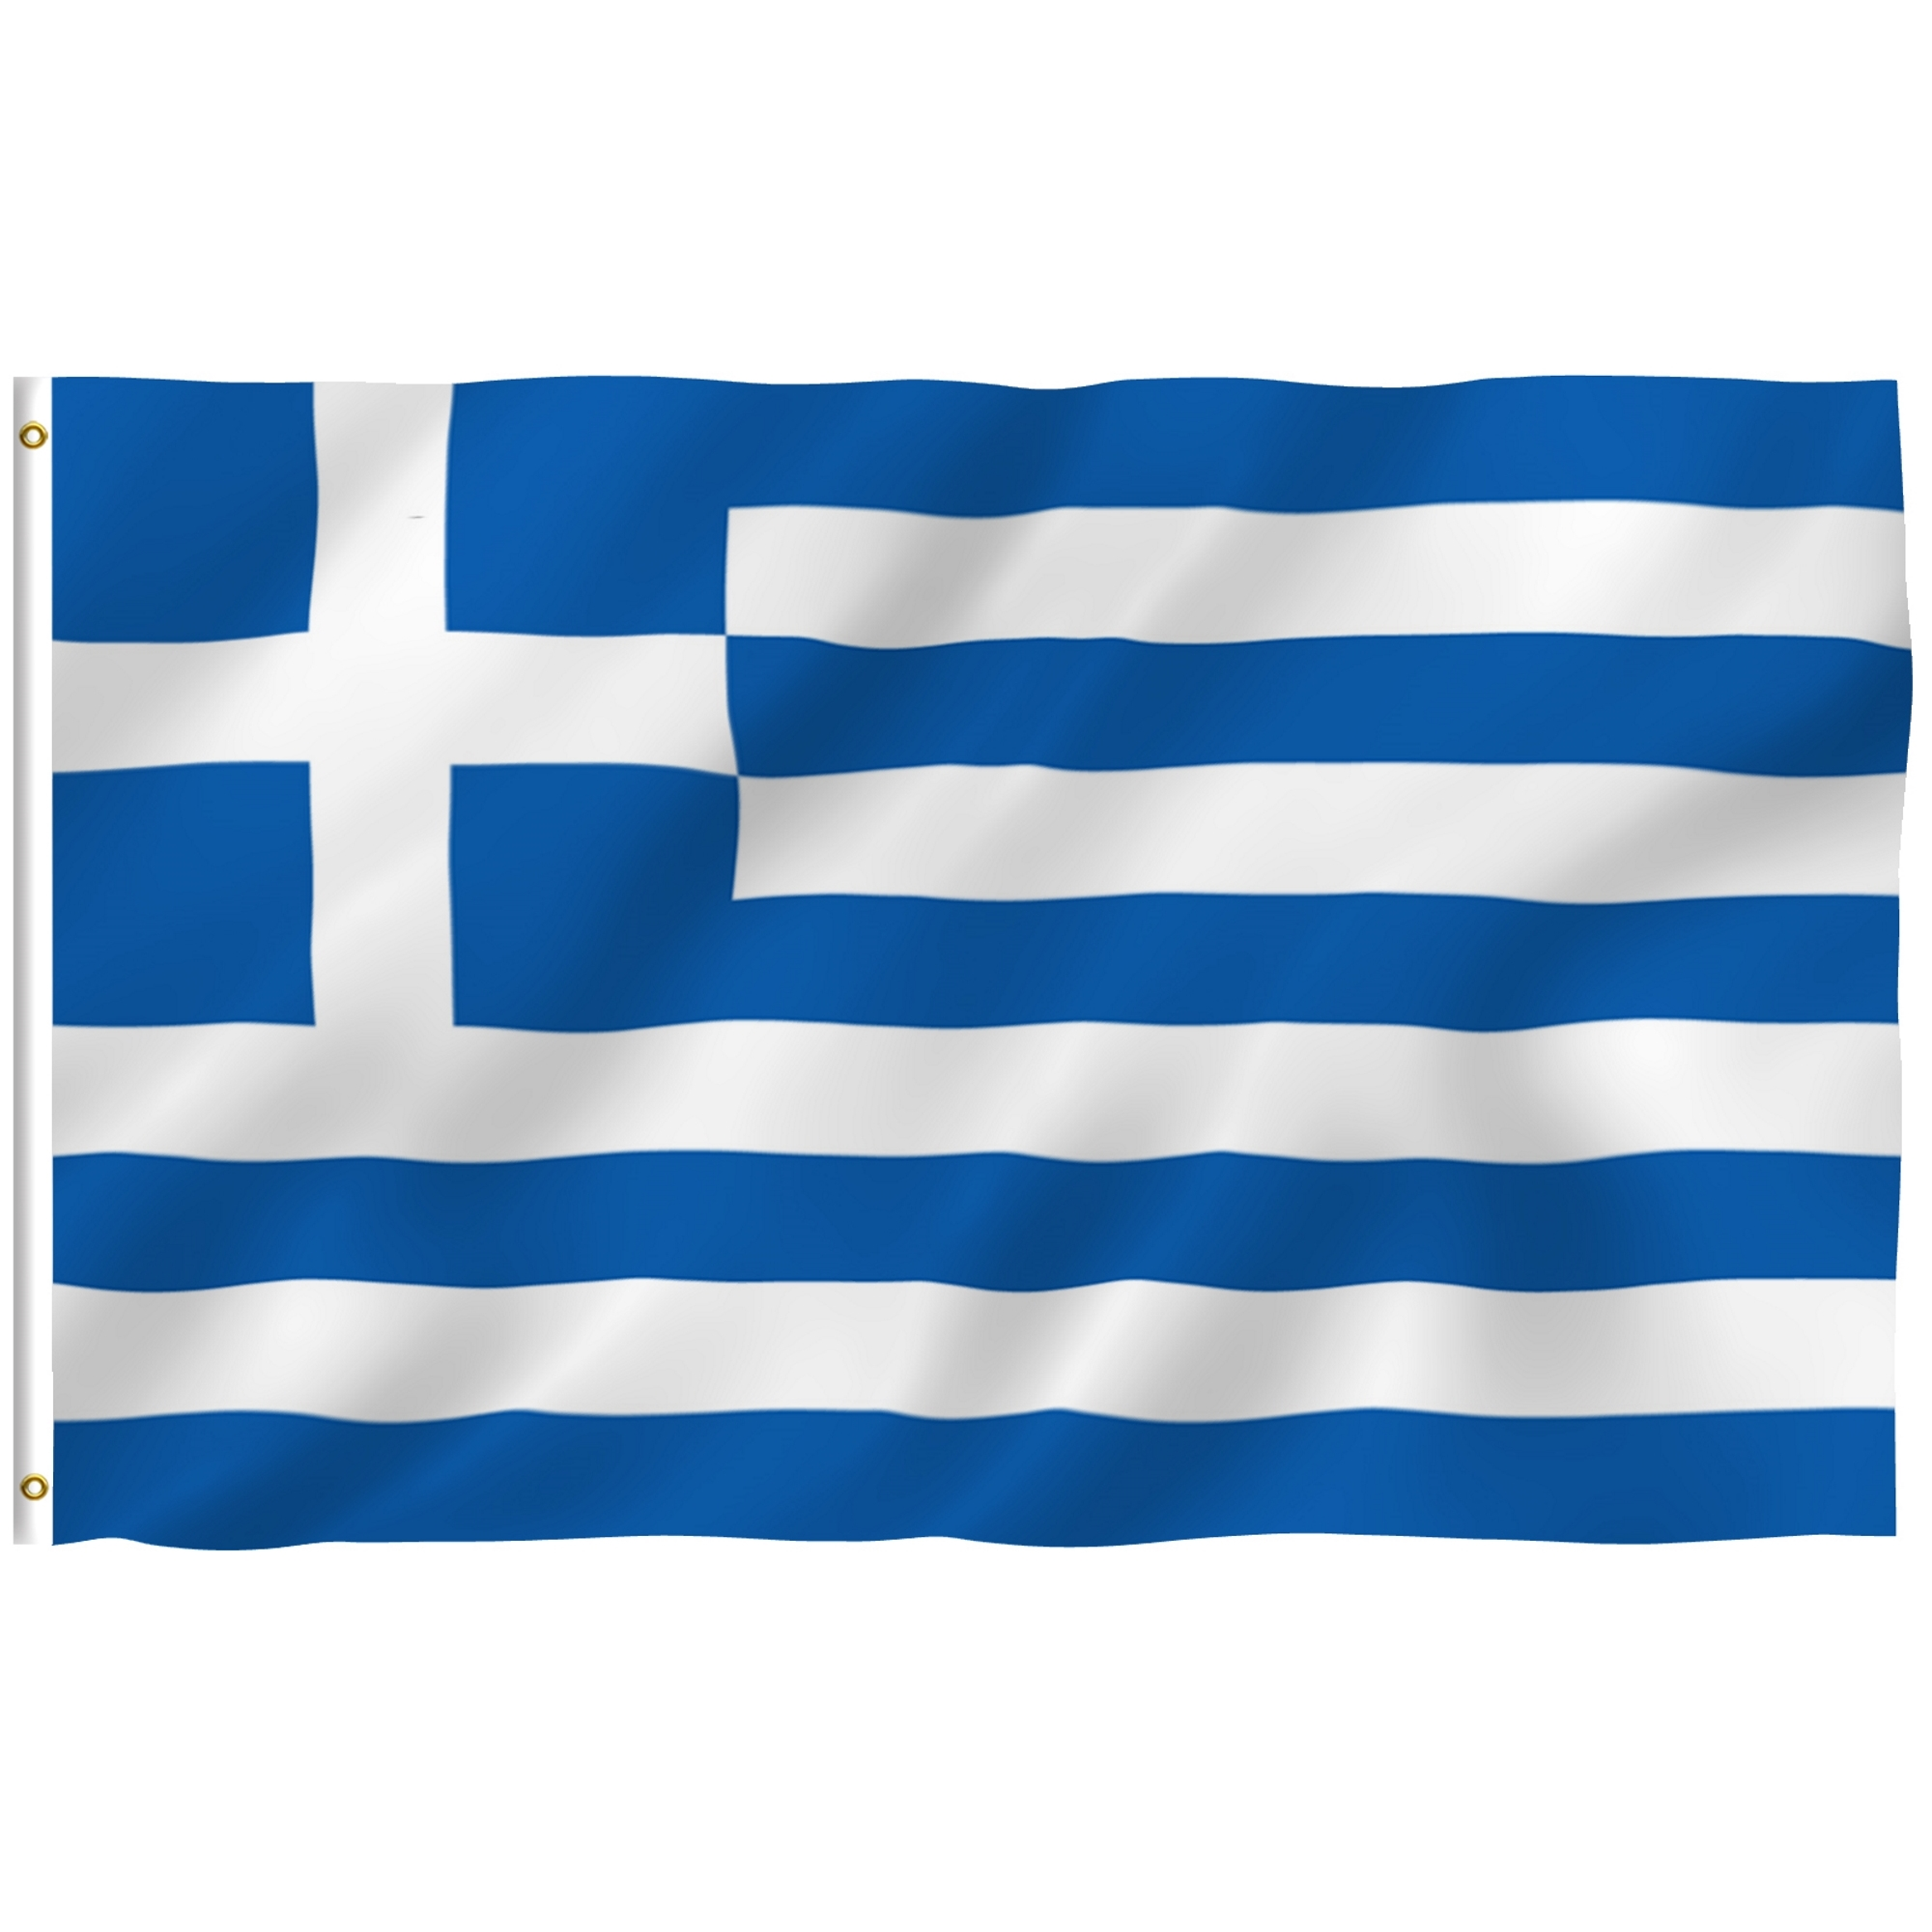 ANLEY [Fly Breeze] 3x5 Feet Greek Flag Vivid Color and UV Fade Resistant Canvas... by ANLEY